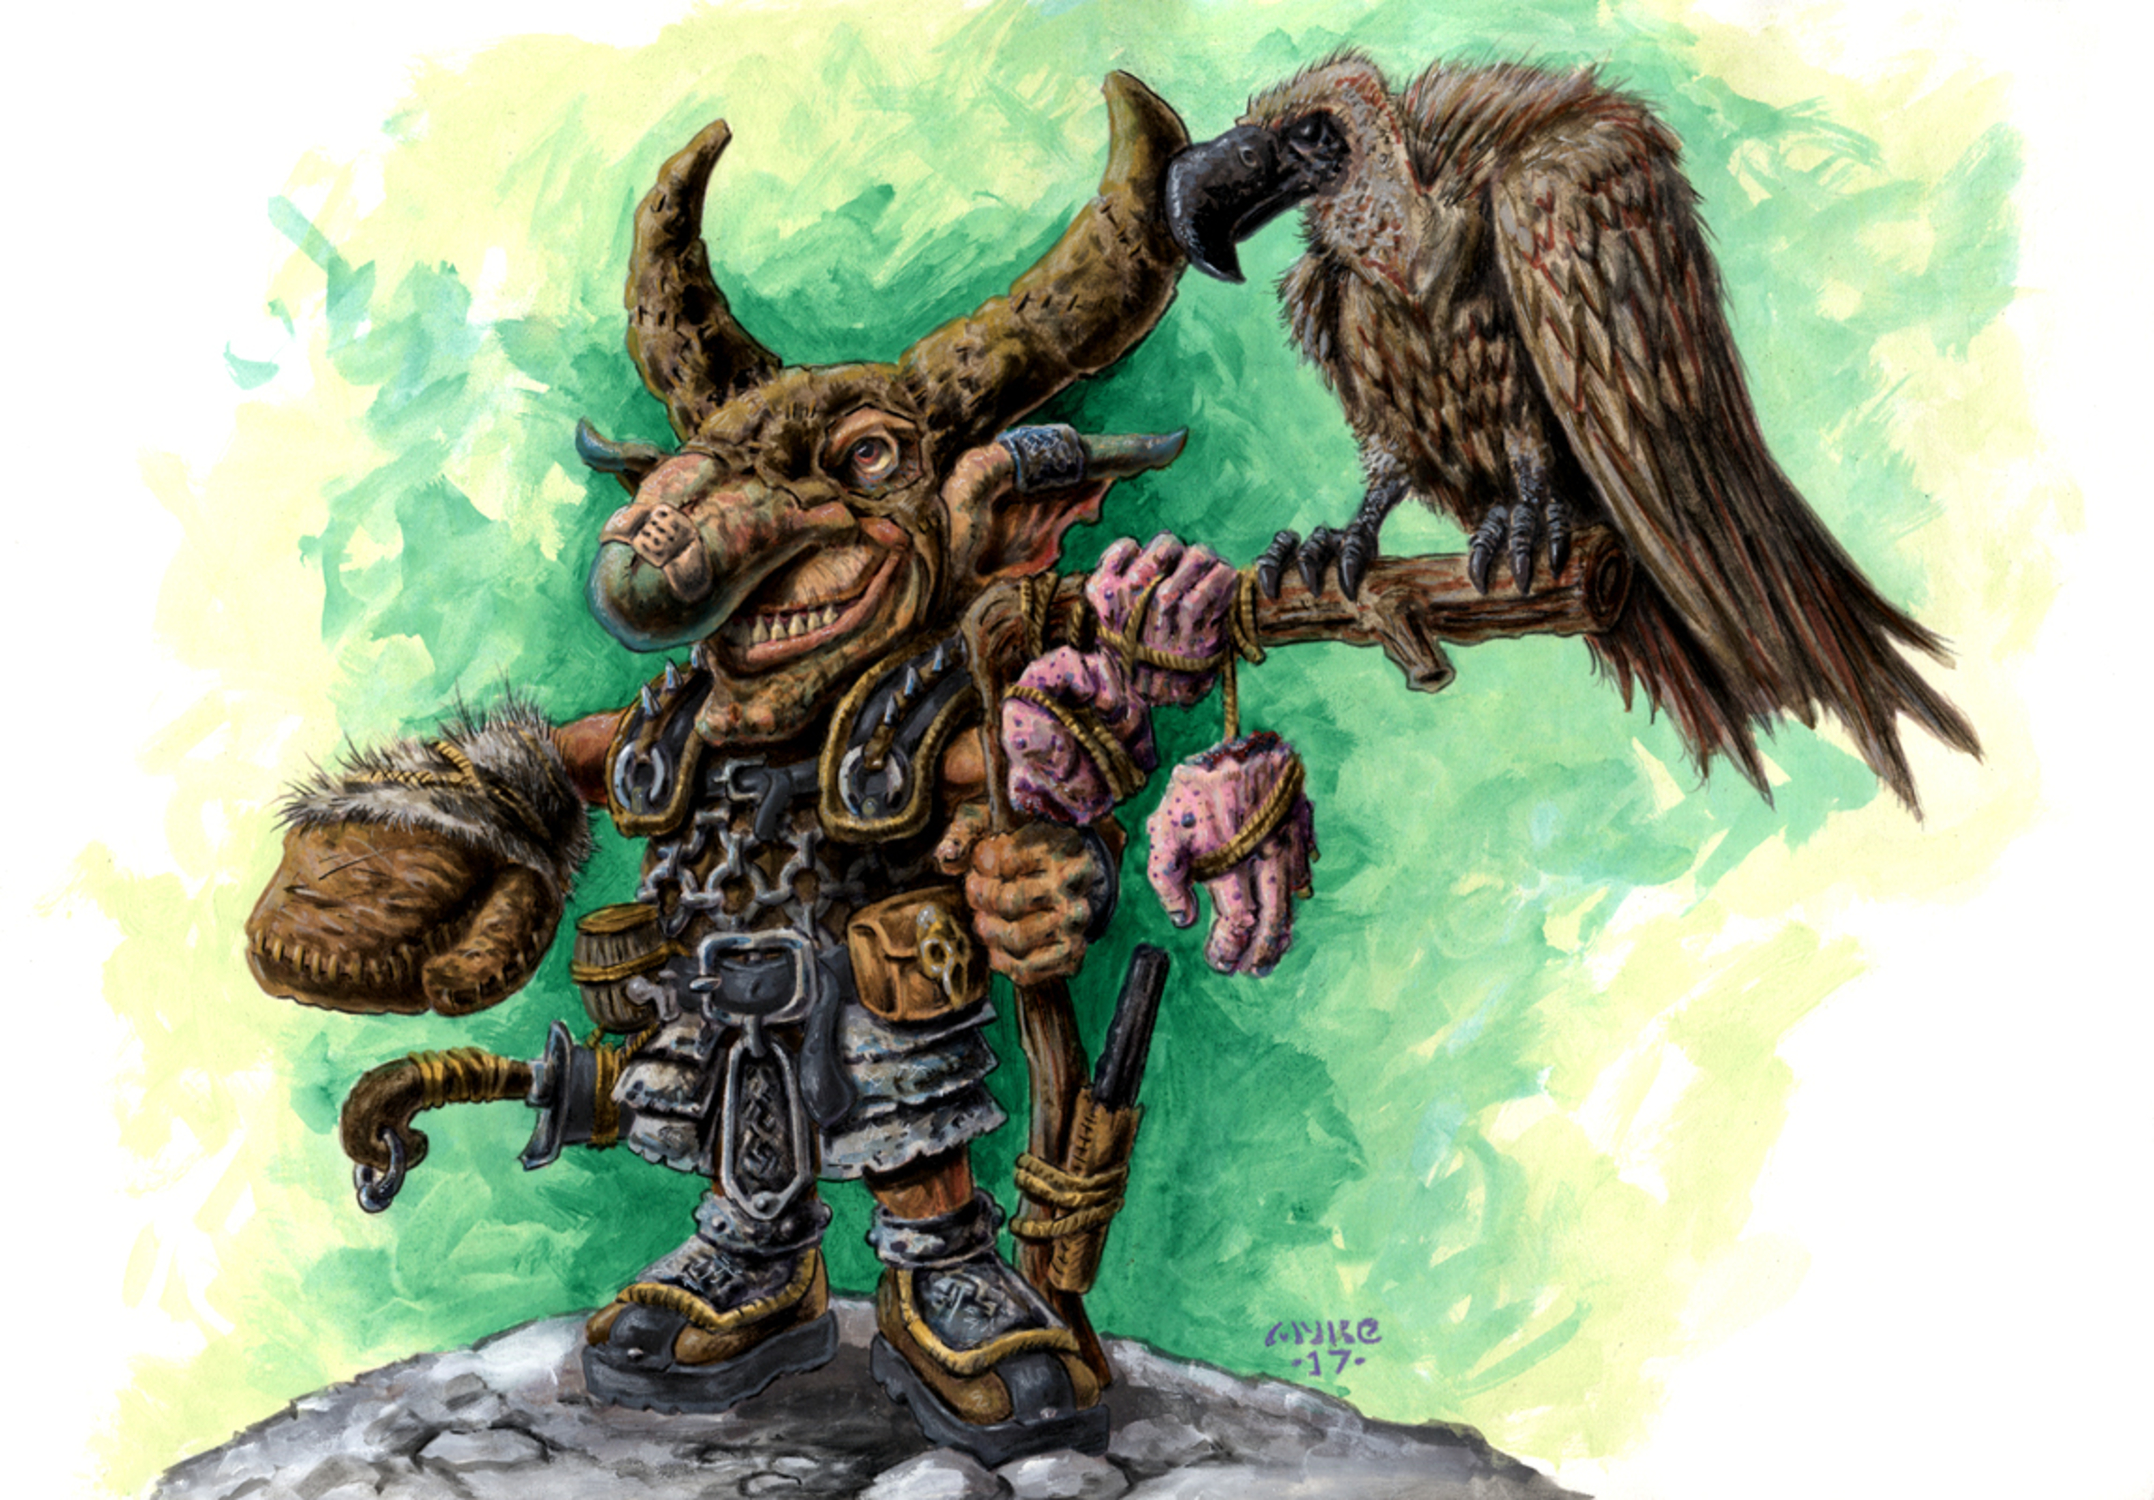 Goblin Vulture Master Artwork by Michael Rechlin